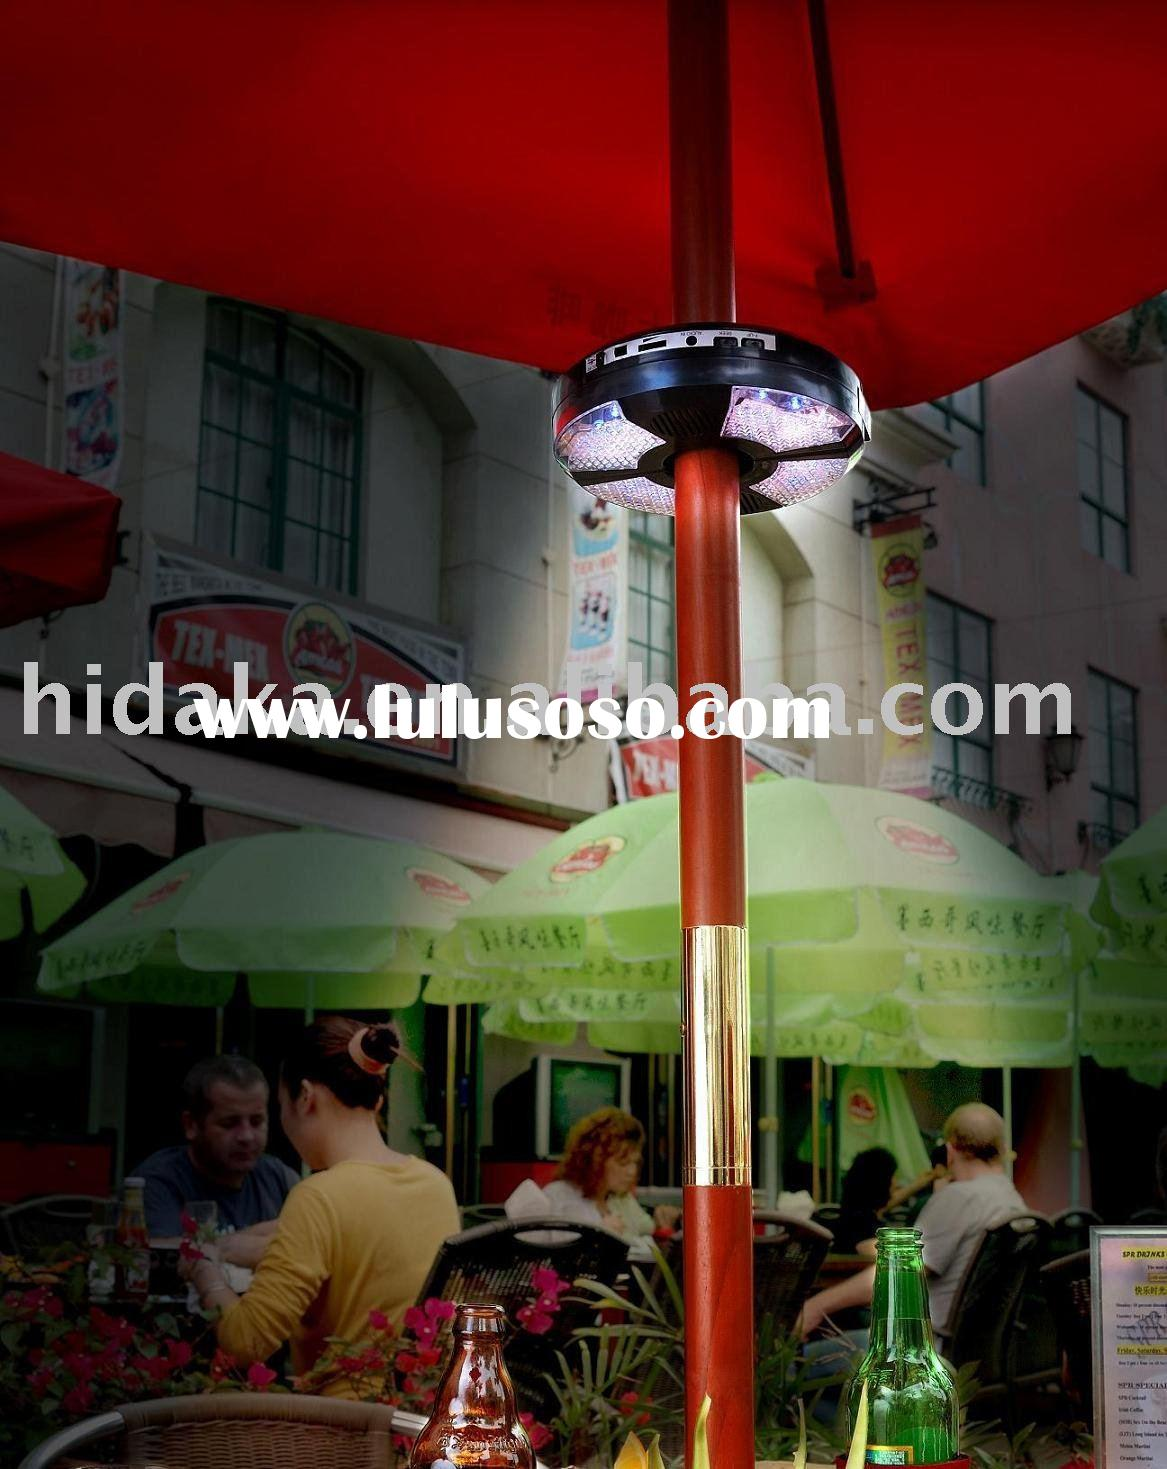 Wireless outdoor speaker for sun umbrella HI-520